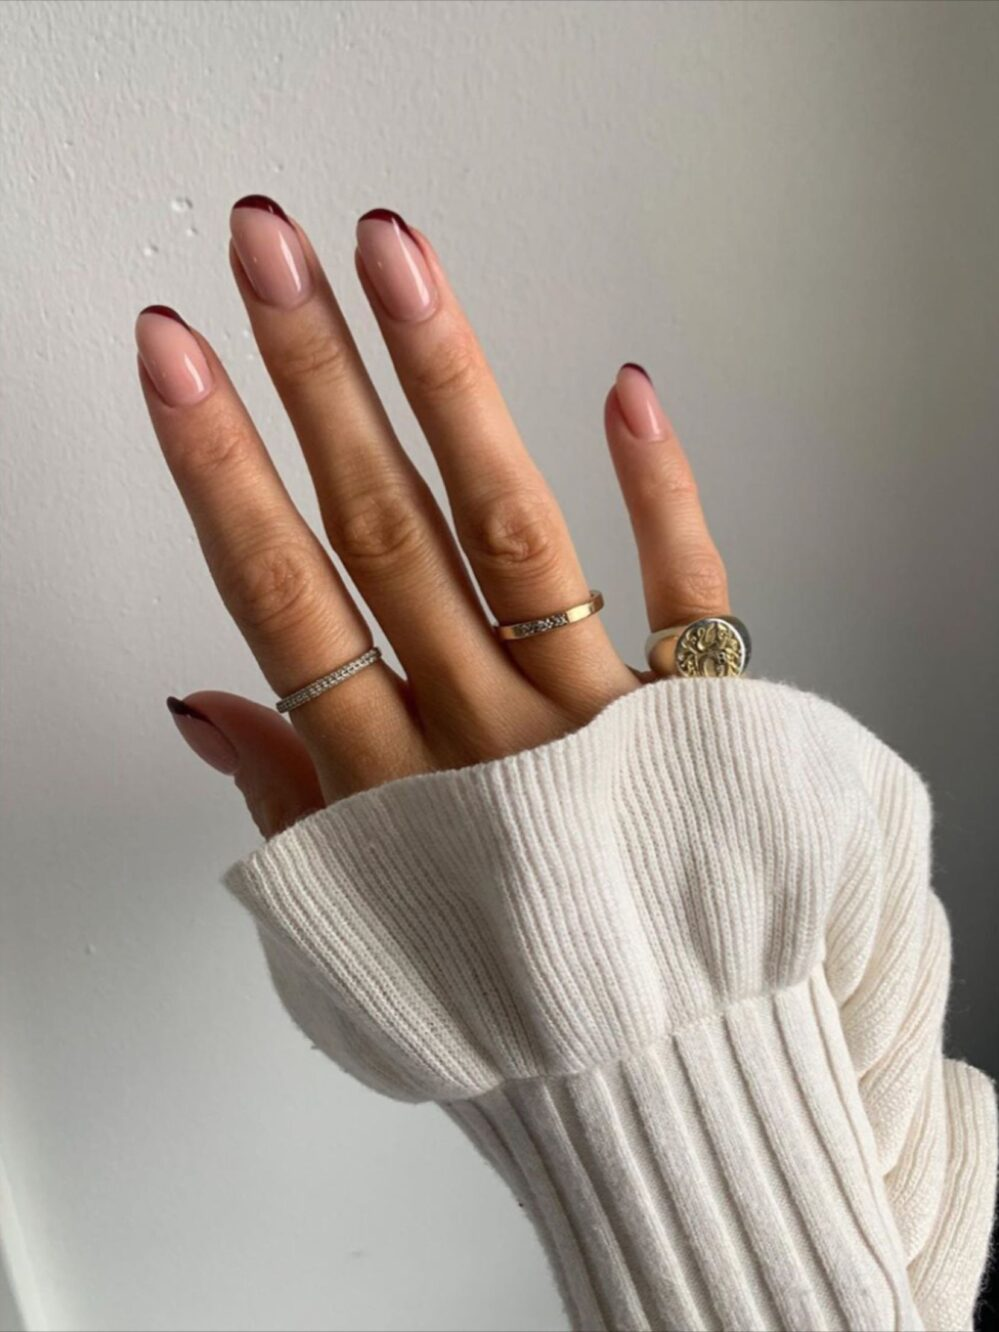 [ad_1]  @_tinamaria, nails, nail polish, manicure, pedicure, nail art, nail pictures, winter style, winter trends, winter fashion Source by halloo88 [ad_2]  …